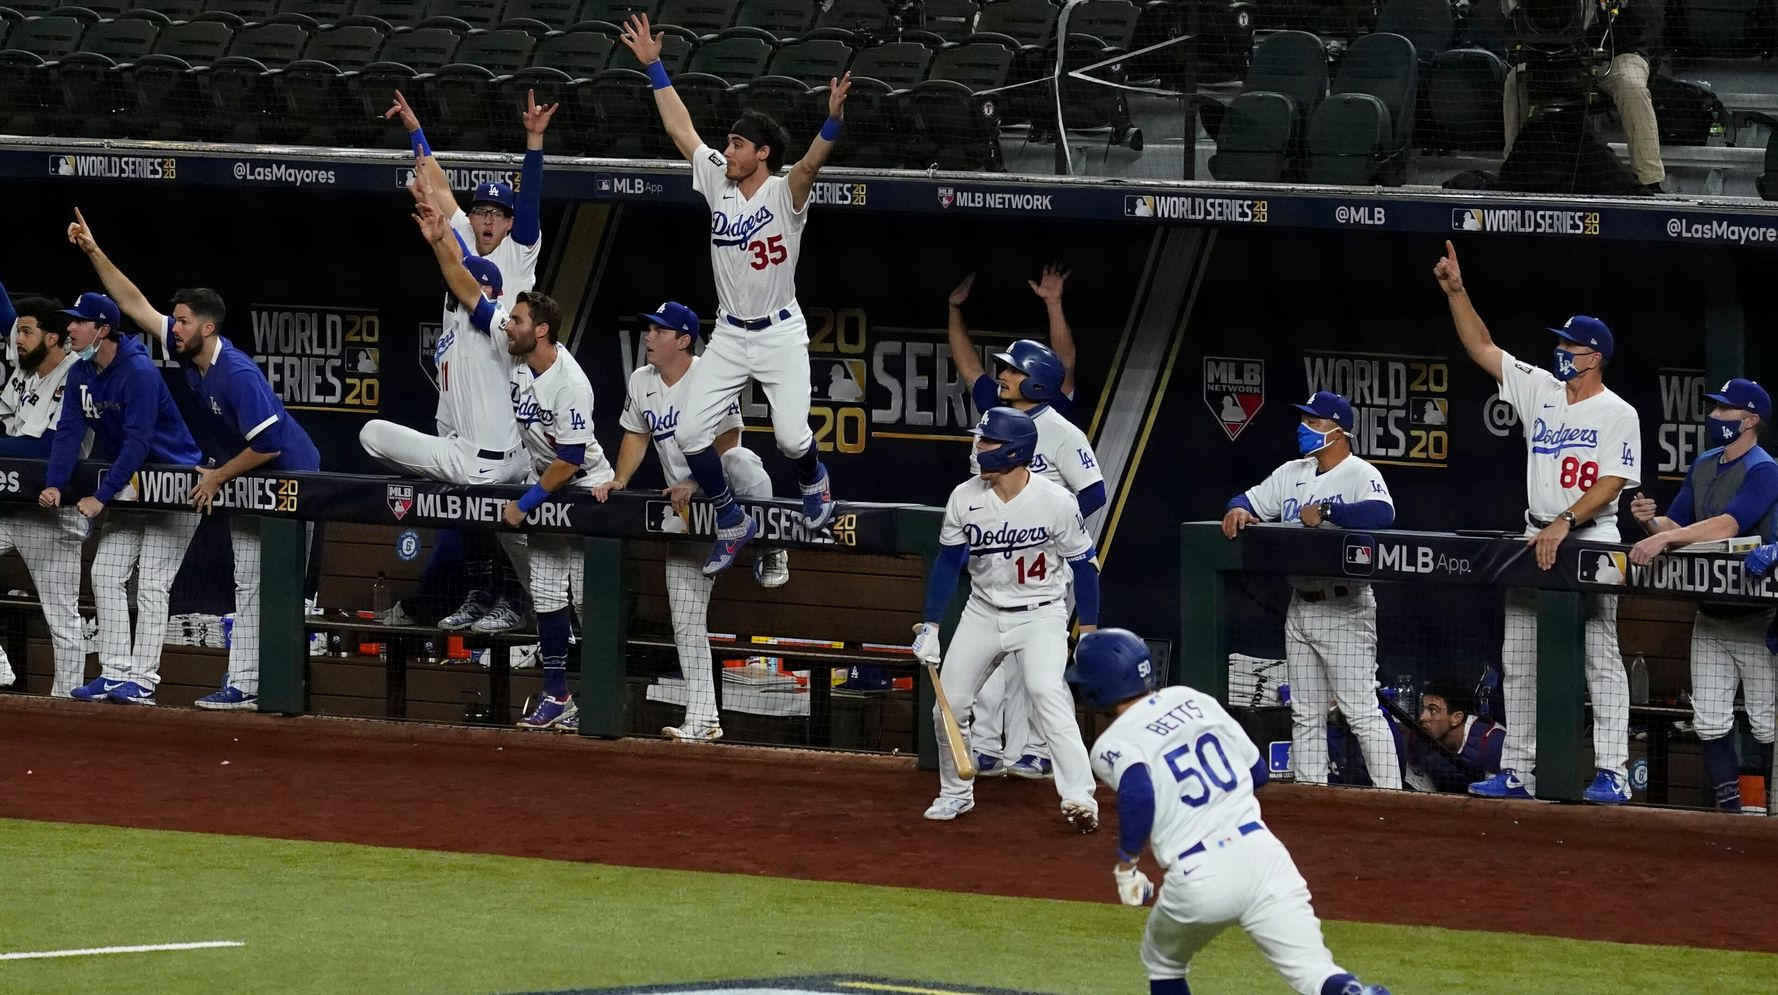 Los Angeles Dodgers Win 2020 World Series